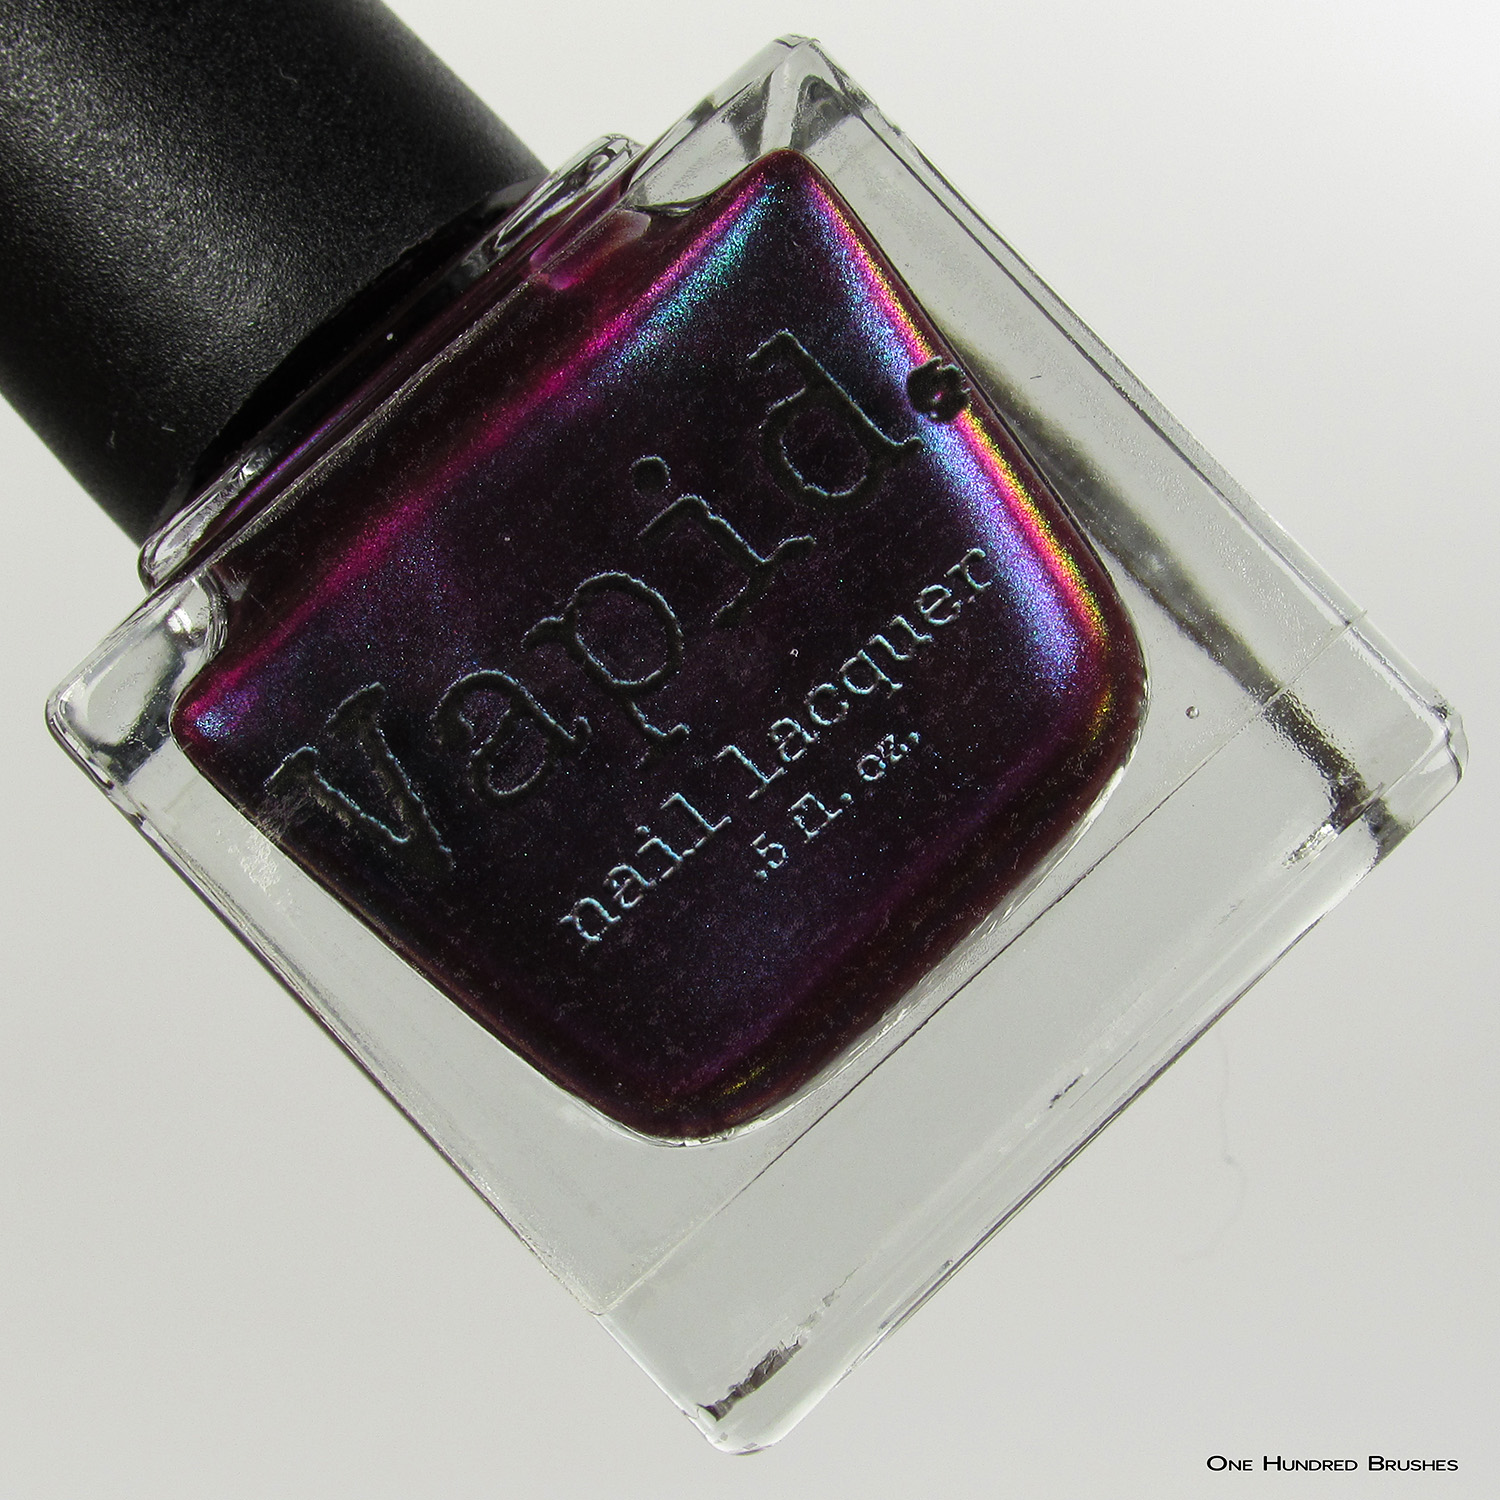 Deviant - Vapid Lacquer May 2019